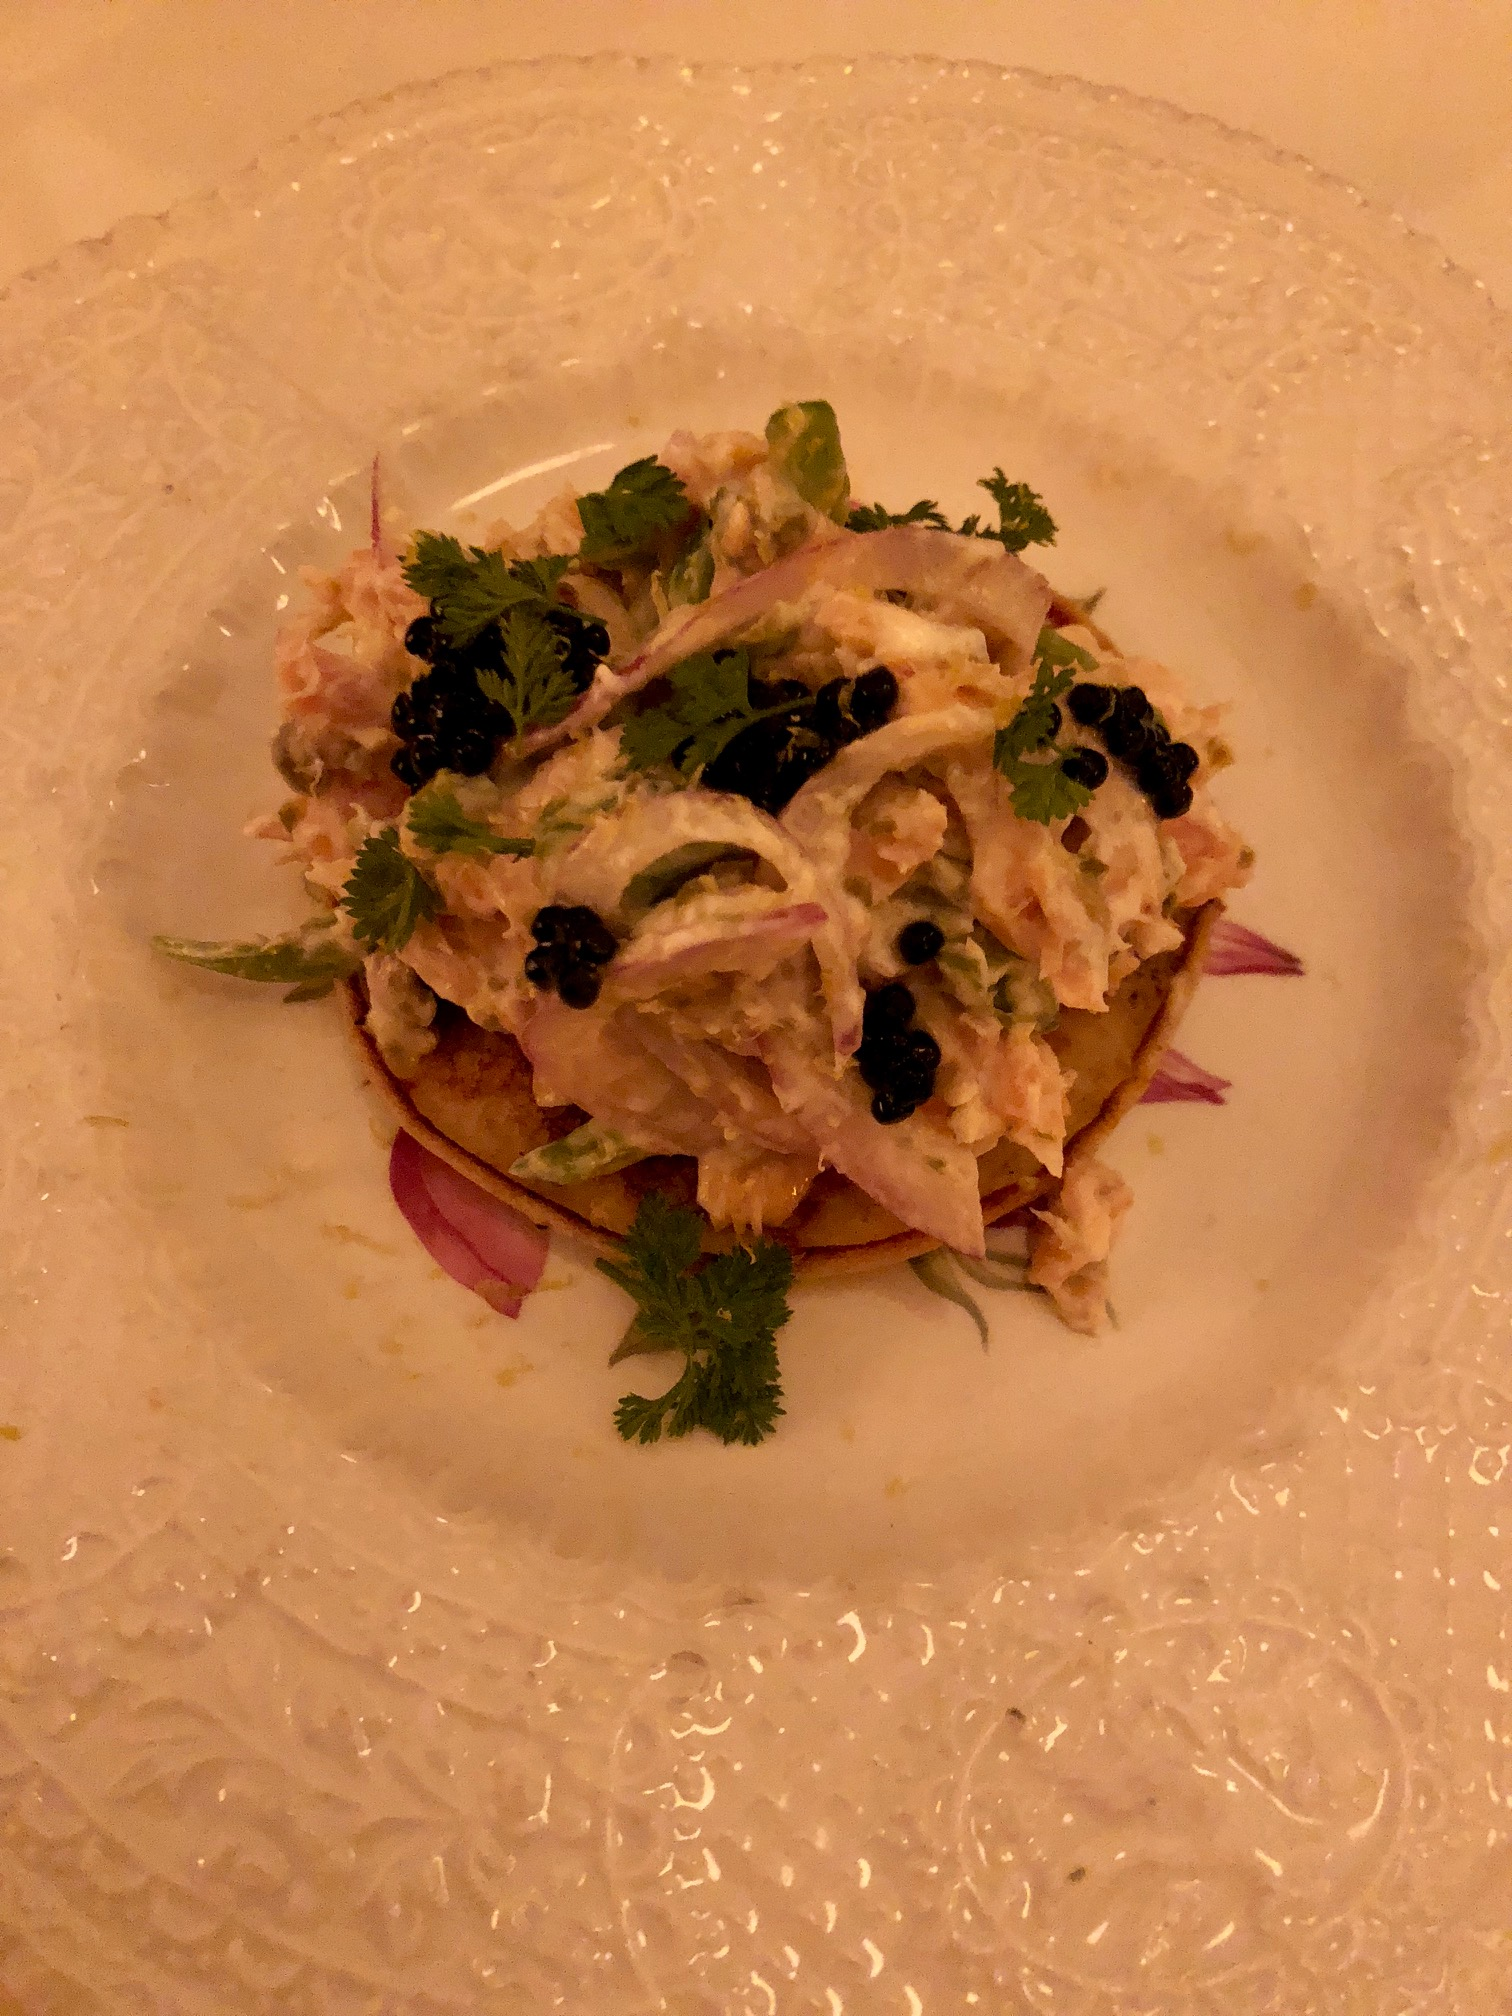 Le Swan – French diner with pockets of excellence and room for improvement